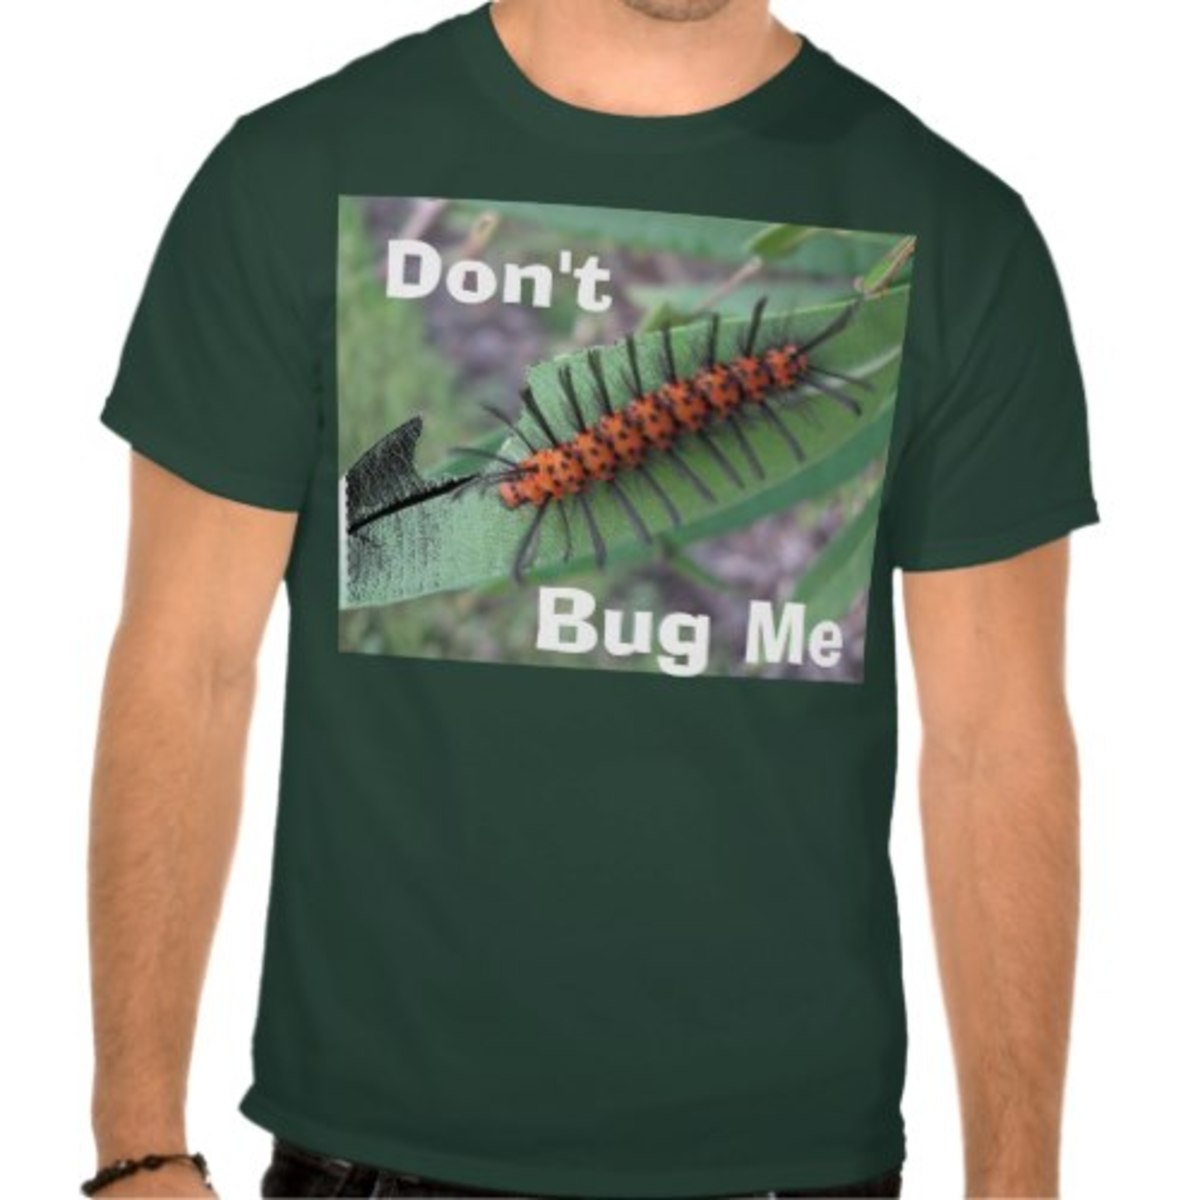 "I like the Zazzle site as it lets me put my nature photos on shirts, mousepads, and other products. For this one, I added the slogan, ""Don't Bug Me."""